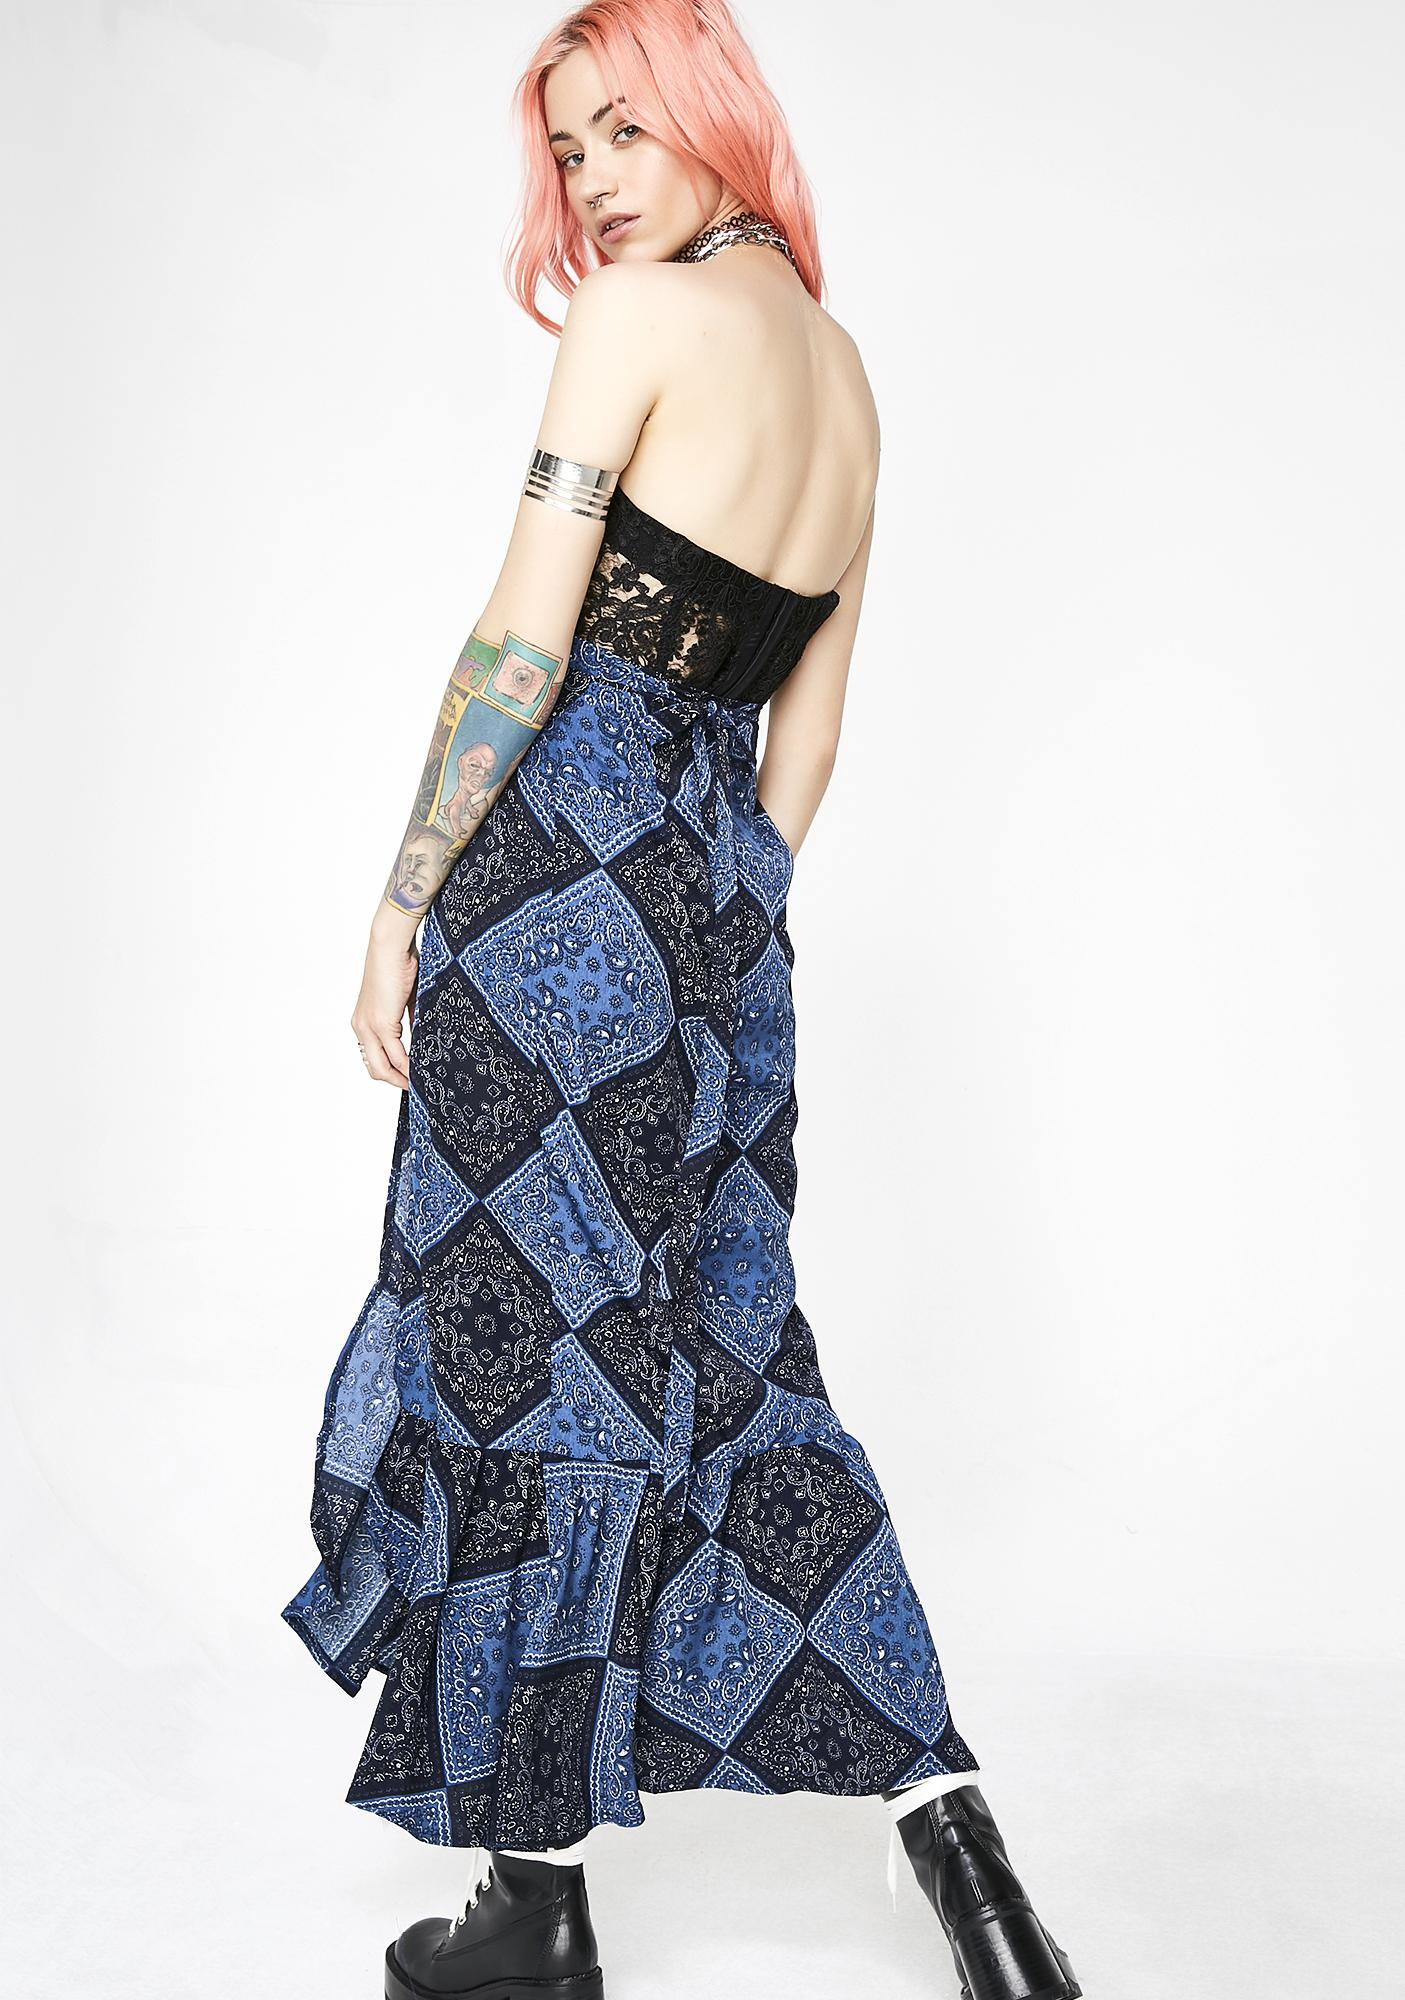 Lira Clothing Mad Blue Elsa Skirt